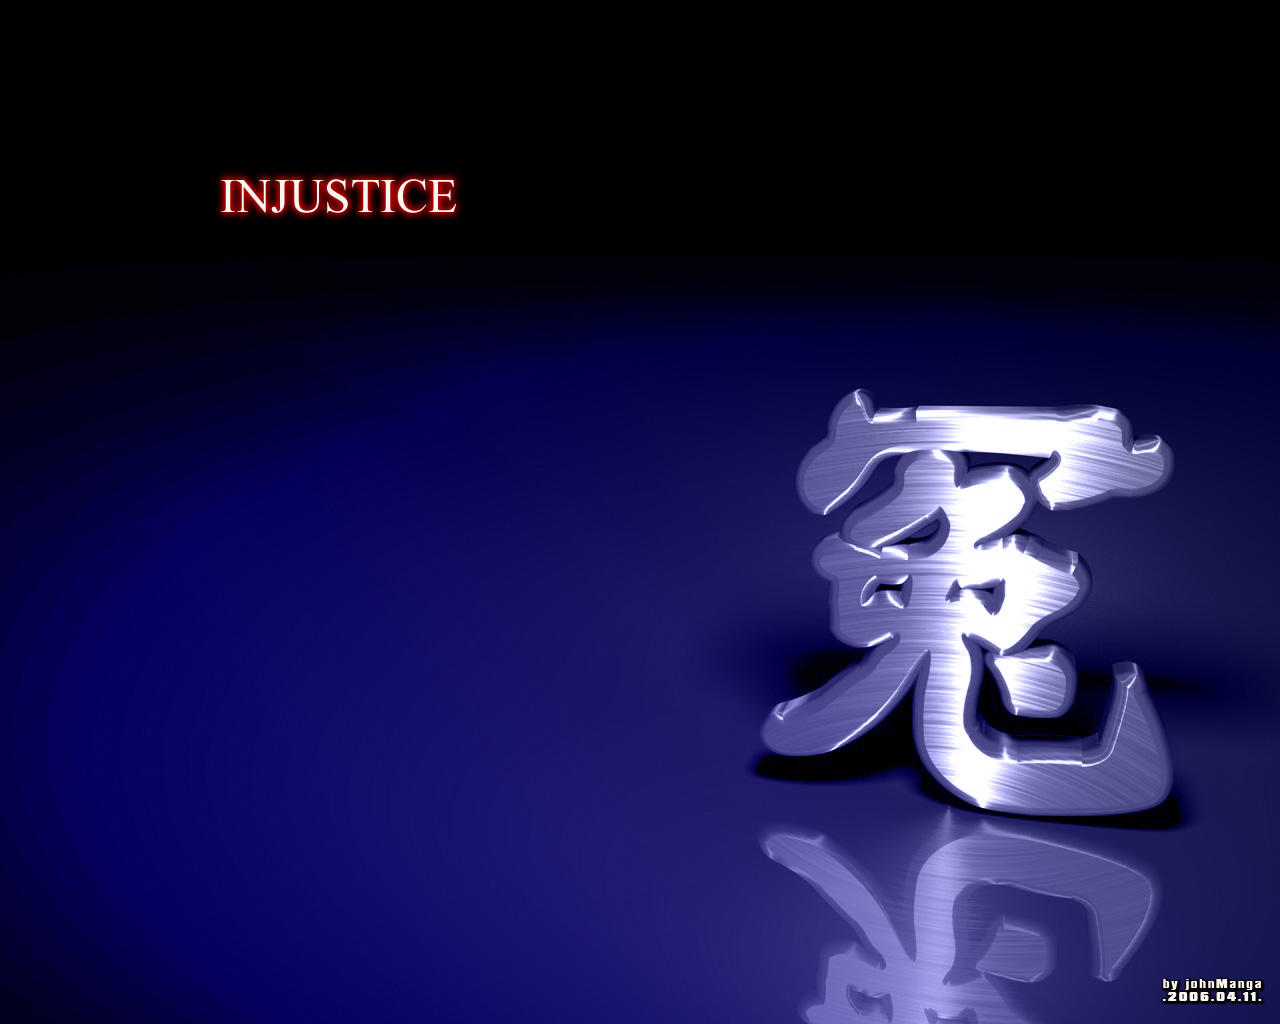 Injustice-in-blue by johnmanga